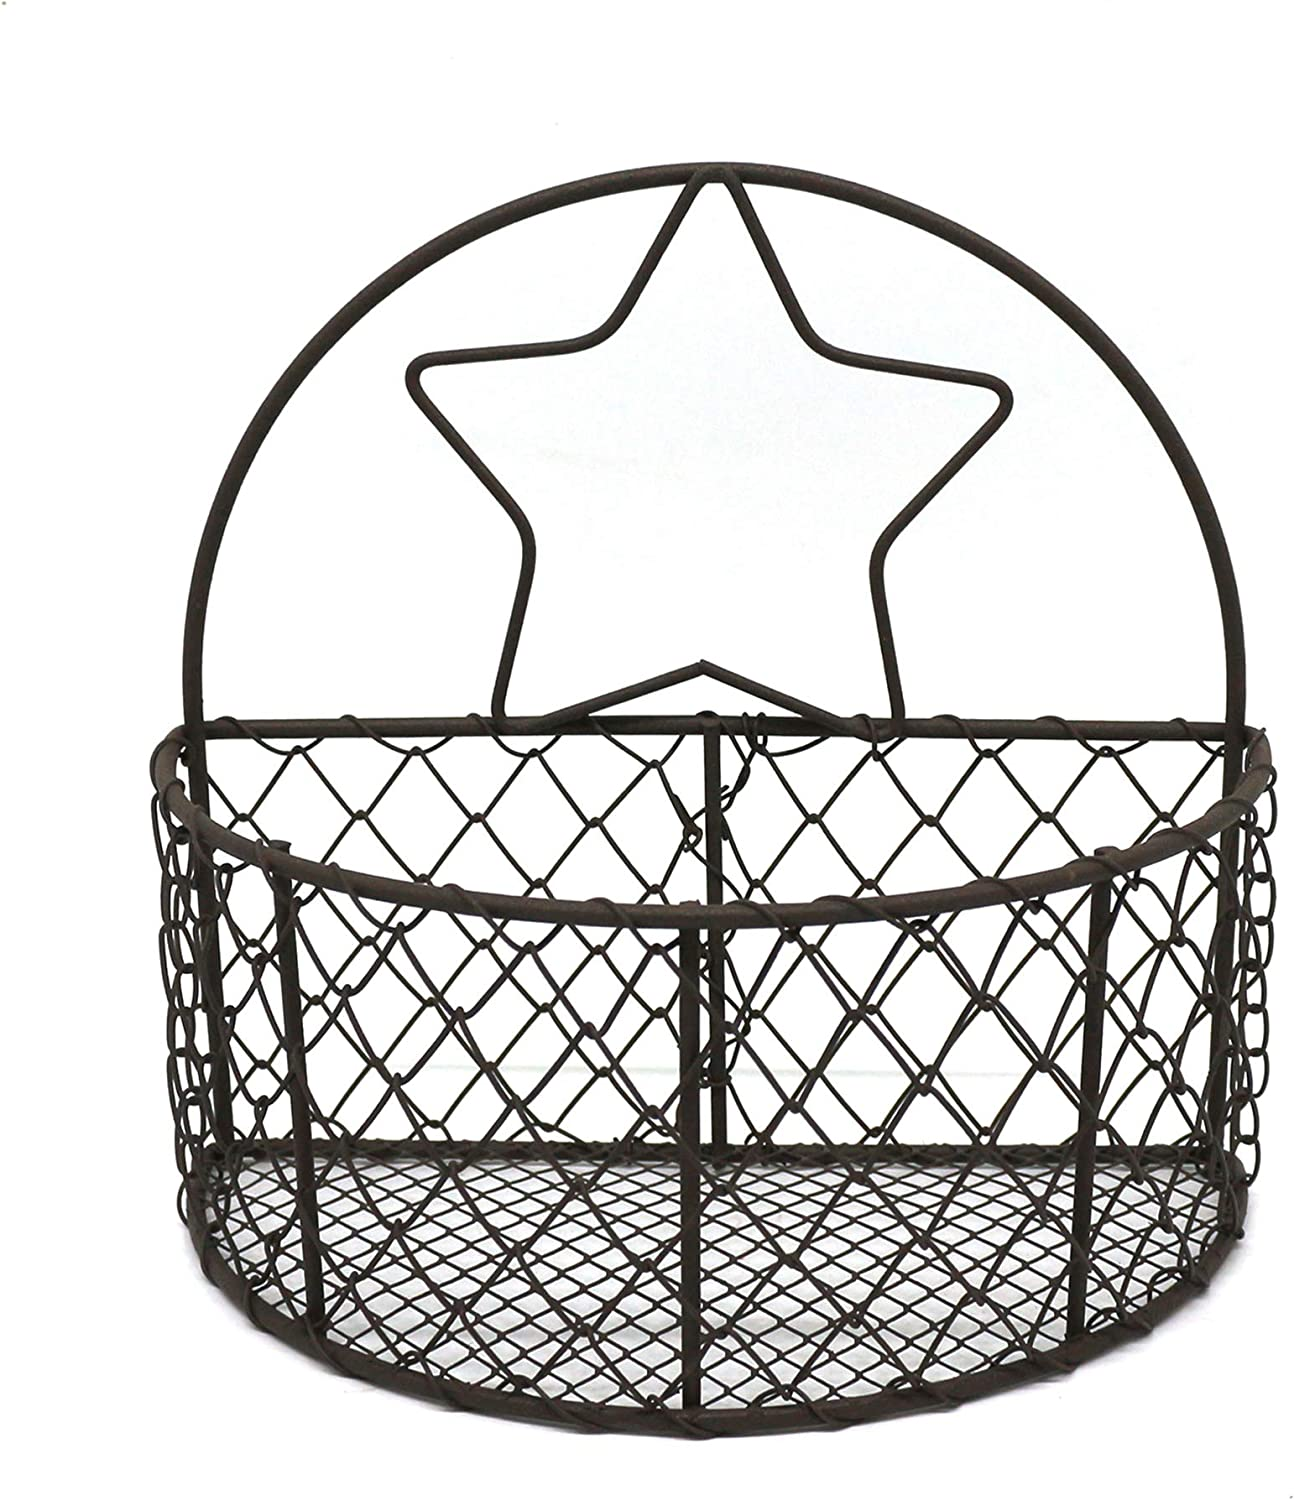 CVHOMEDECO. Wall Mounted Chicken Wire Storage Basket Rustic Hanging Wire Bin Organizer for Kitchen, Pantry, Closets, Bedroom and Bathroom, Rusty, 7-1/2 X 4 X 7-1/8 Inch